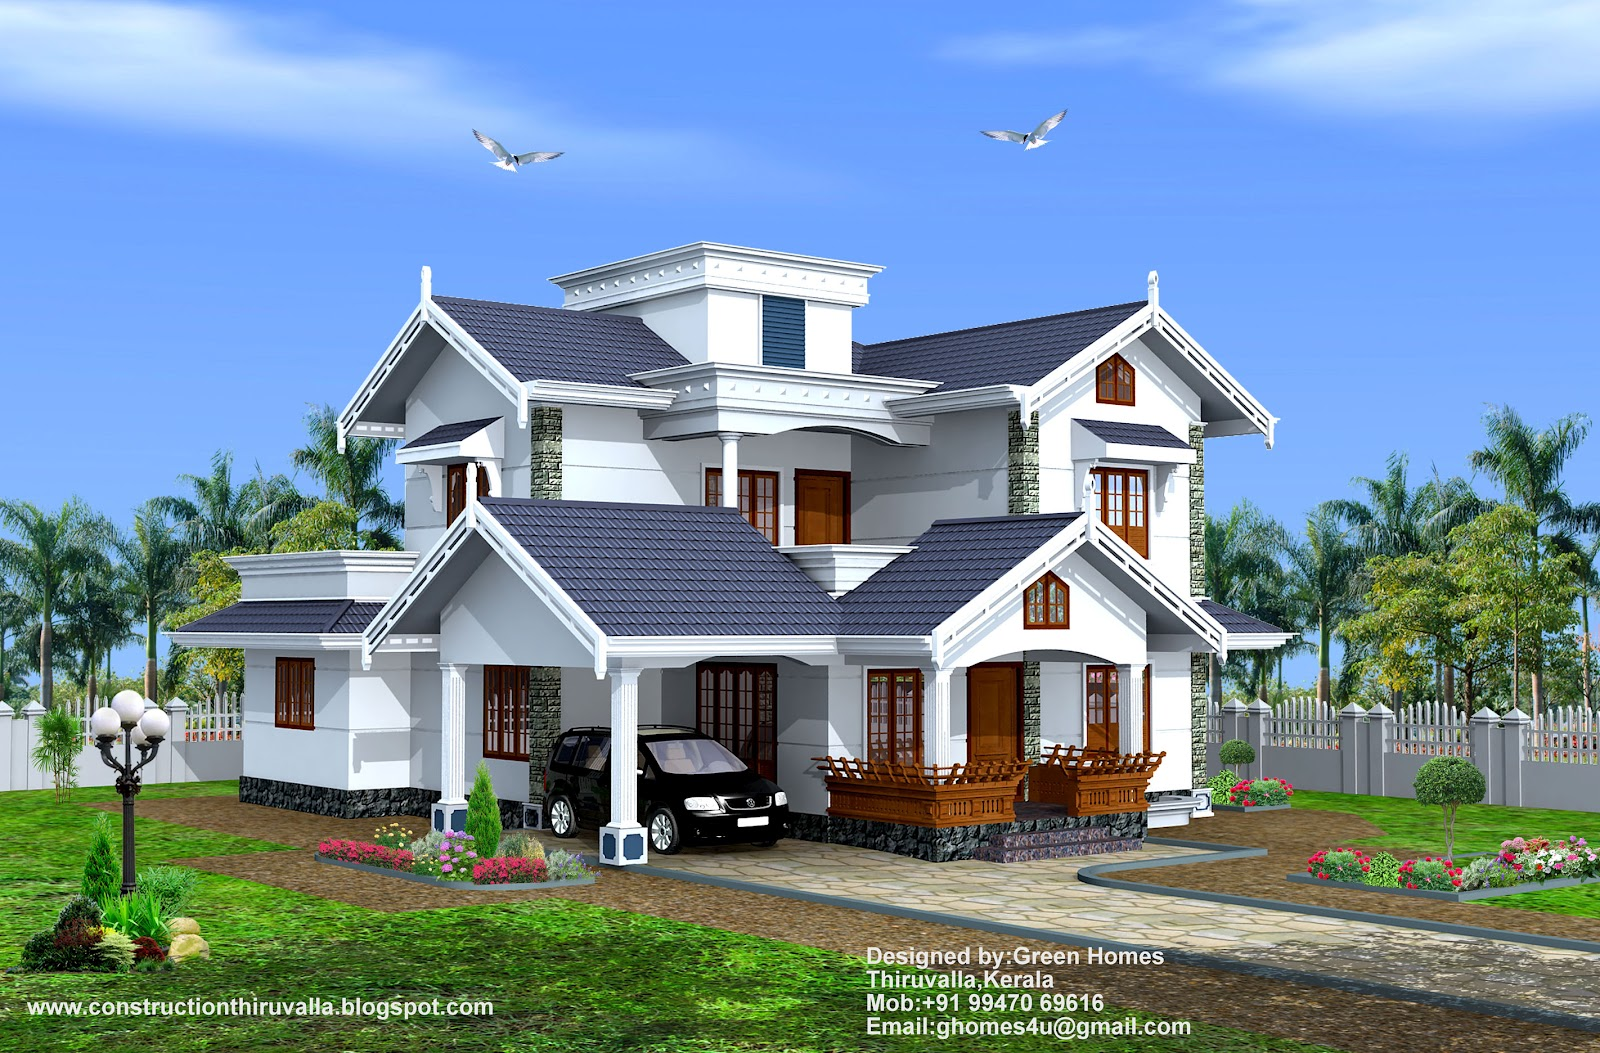 bhk indian home designed by green homes construction thiruvalla